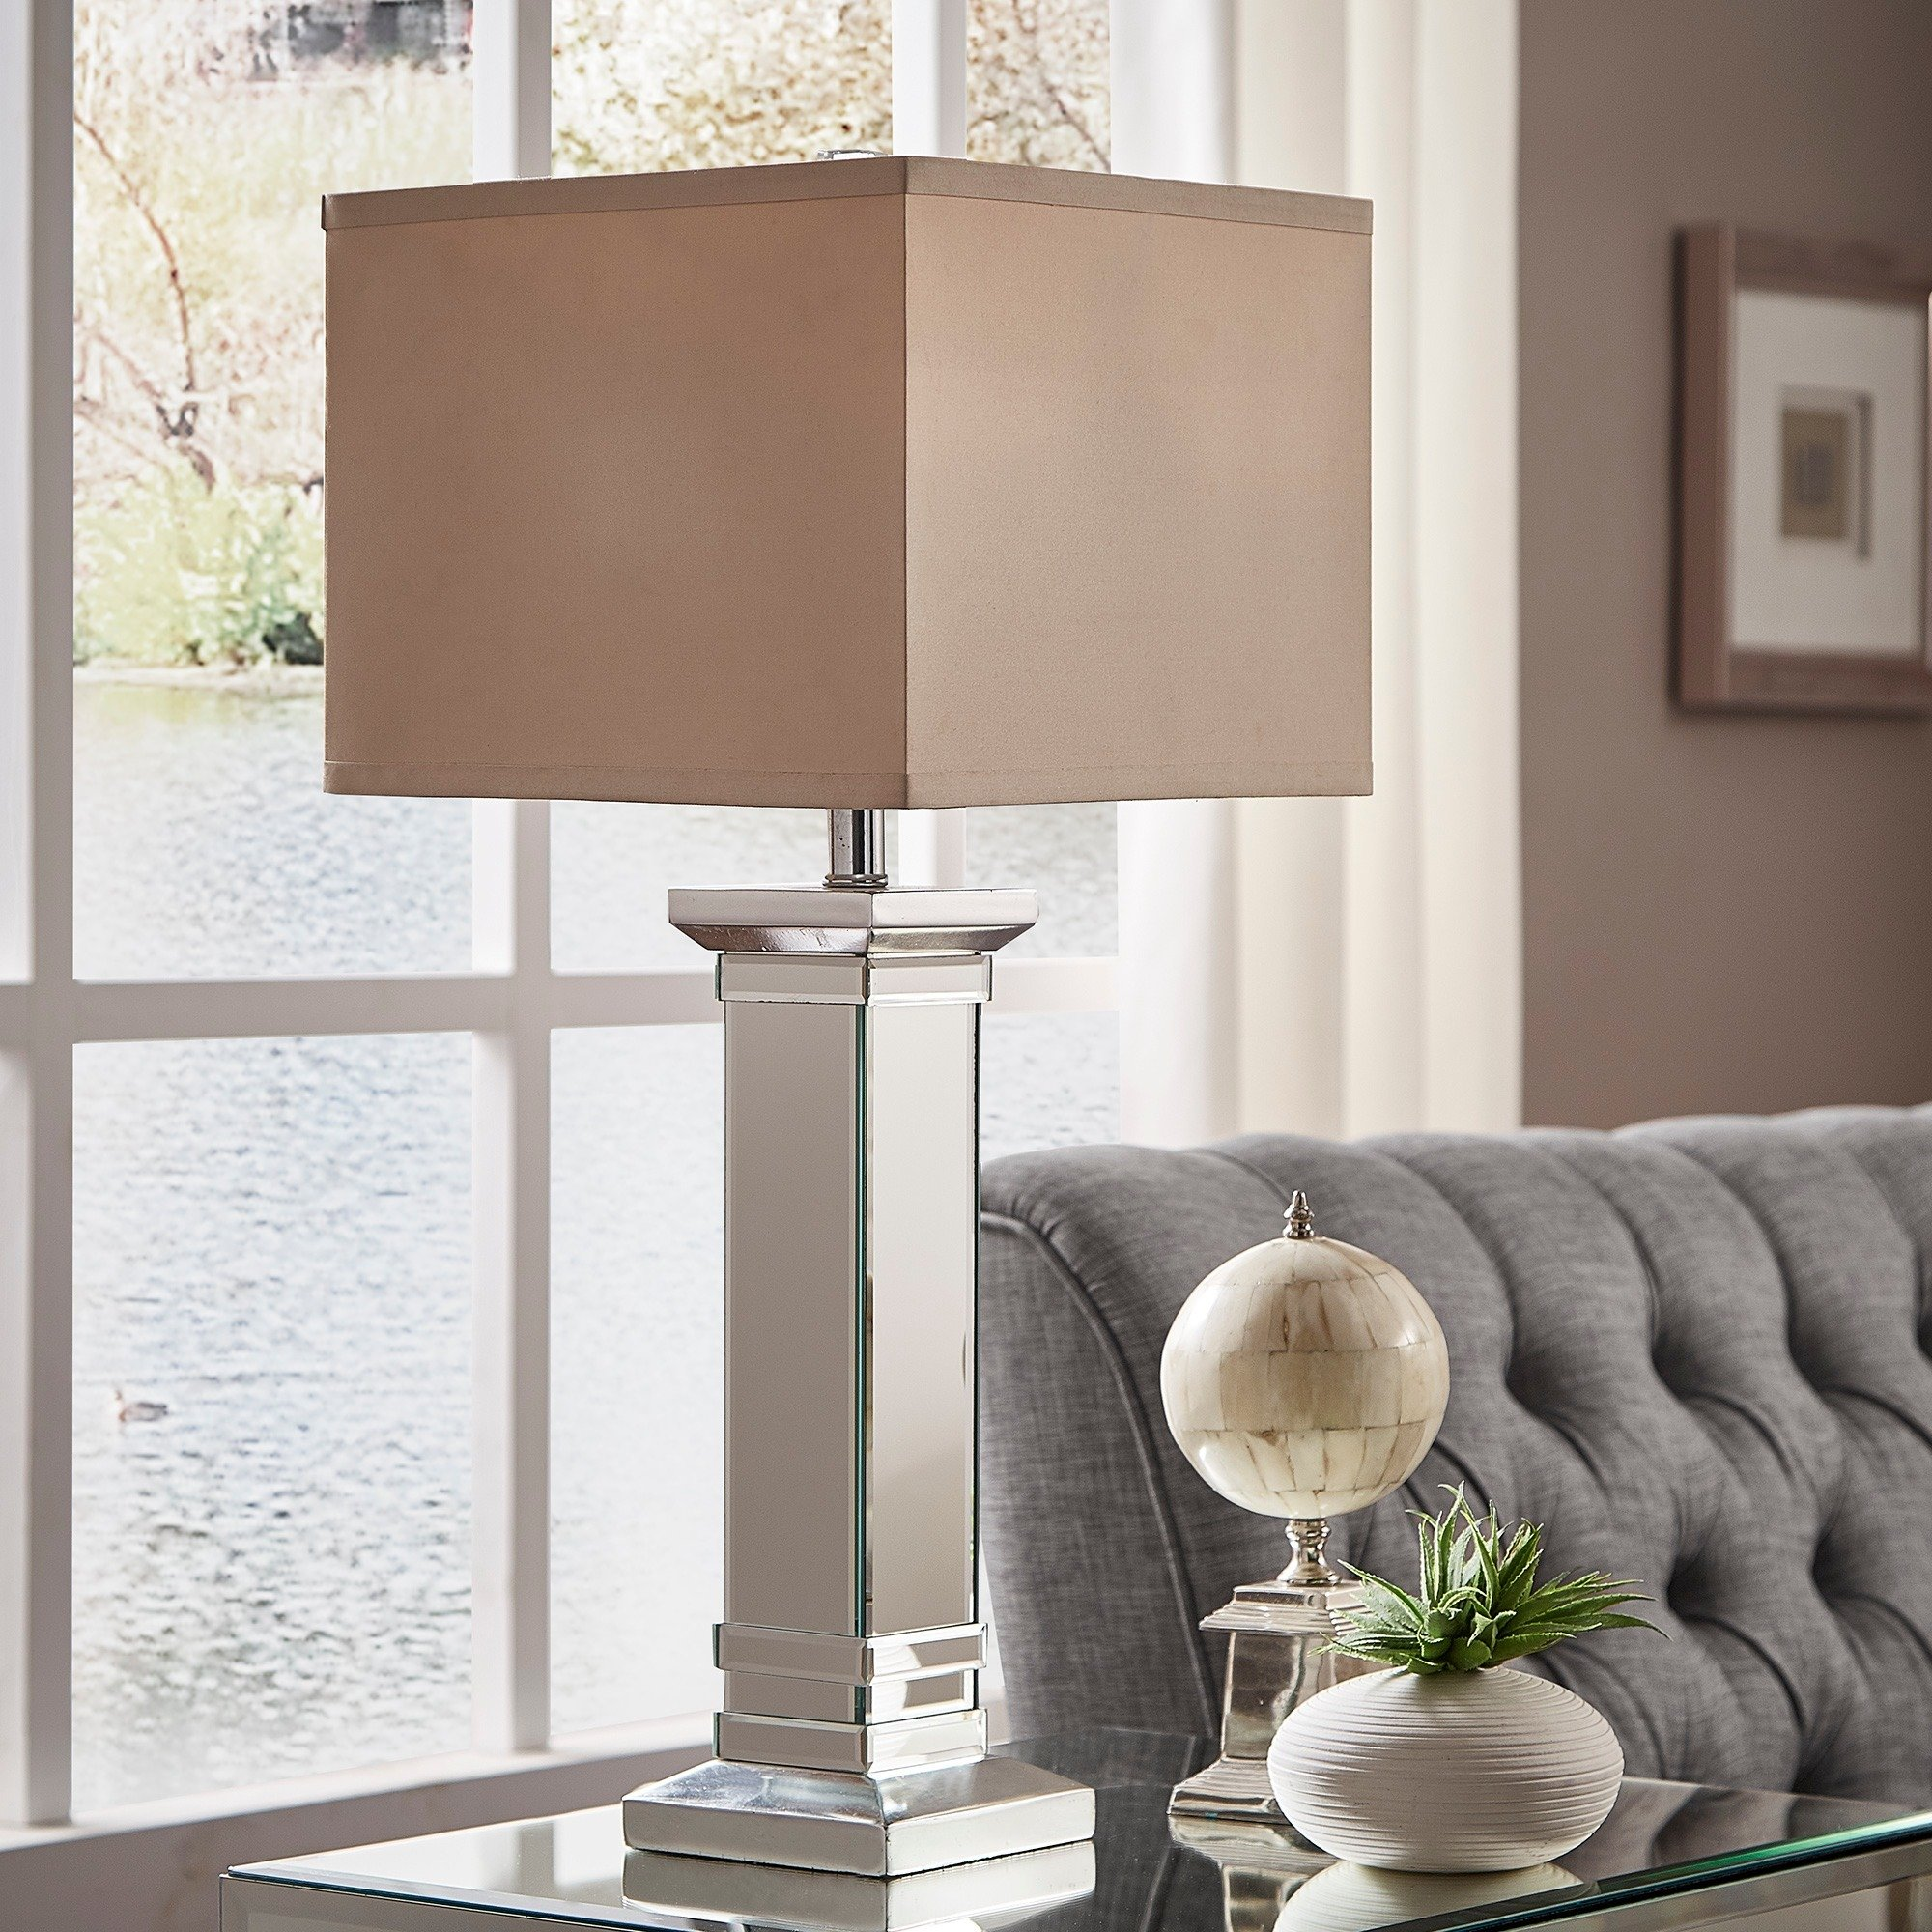 felton way crystal mirror base light accent table lamp inspire bold lighting threshold marble round dining set for living room storage cabinets led lights home end with furniture